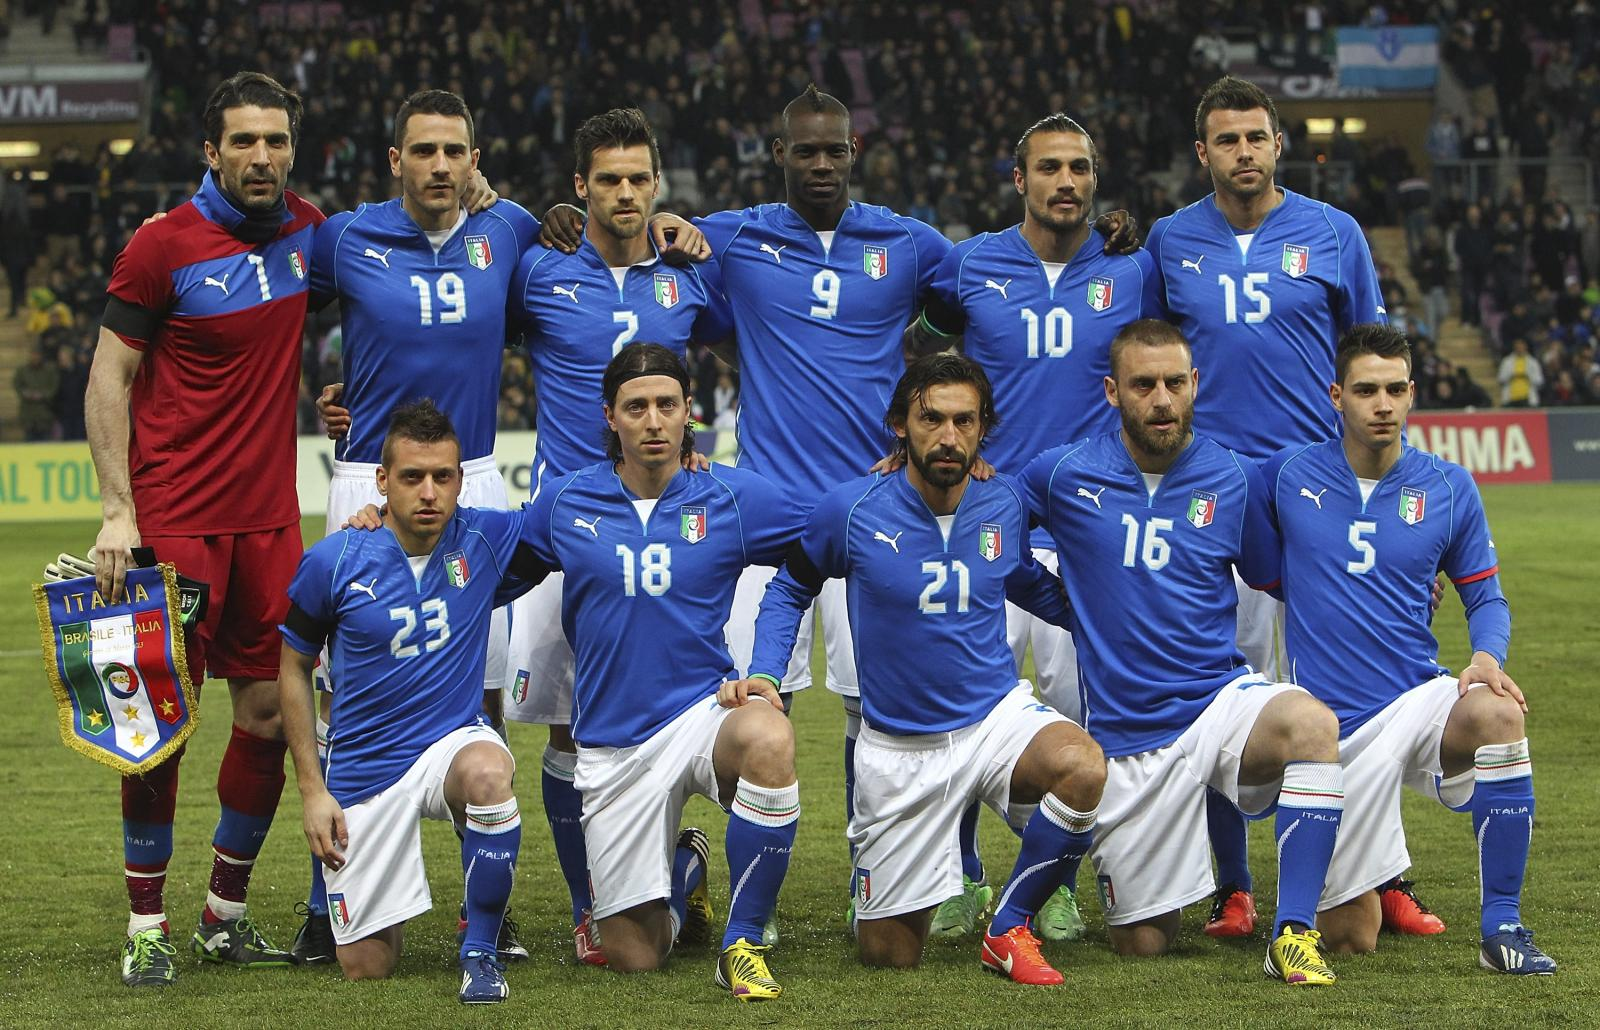 Italy-13-PUMA-confederations-cup-home-kit-blue-white-blue-line-up.jpg